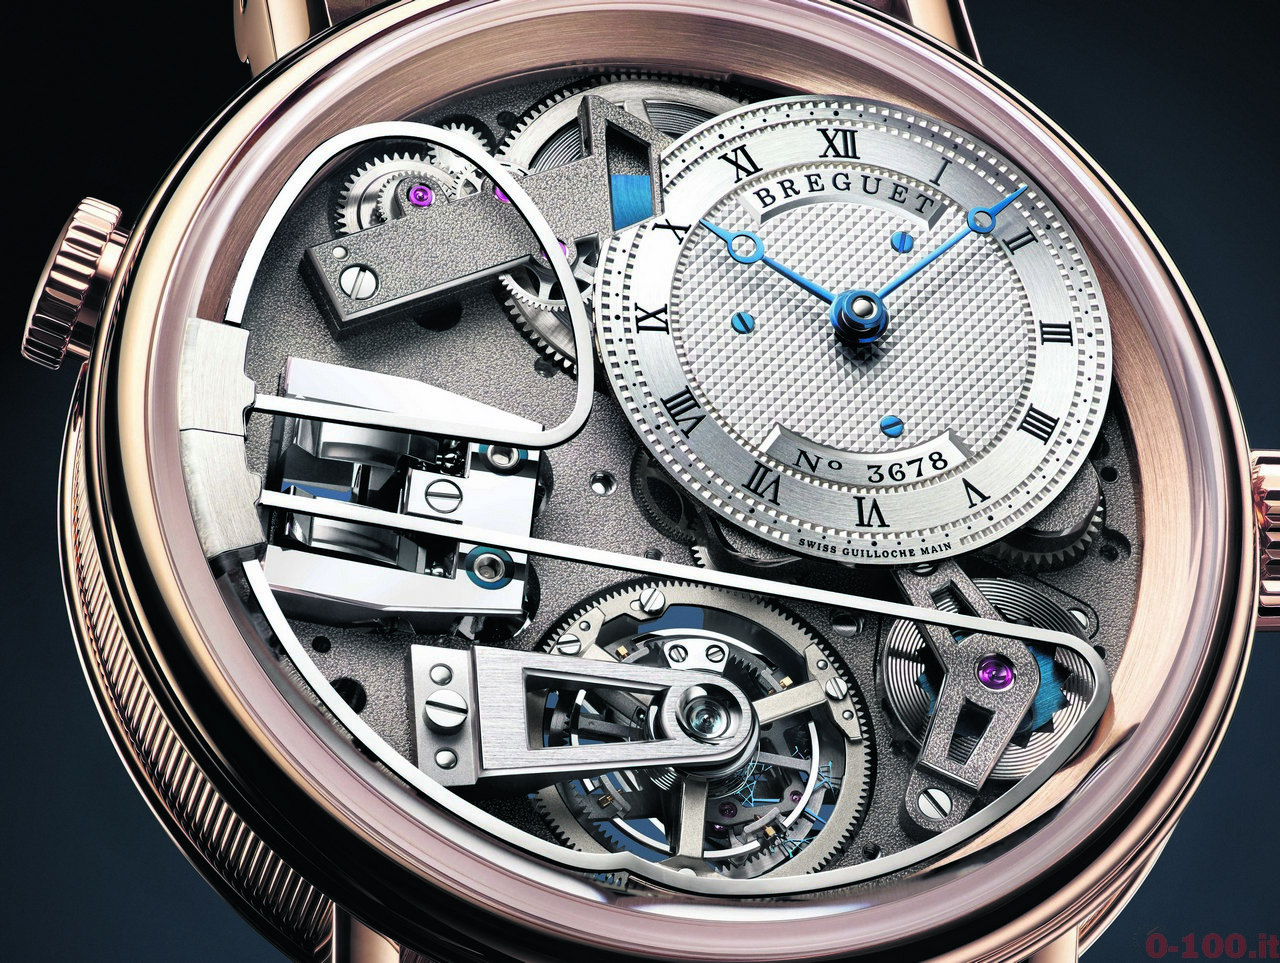 Baselworld-2015-Breguet-Tradition-Repetition-Minutes-Tourbillon-0-100_1